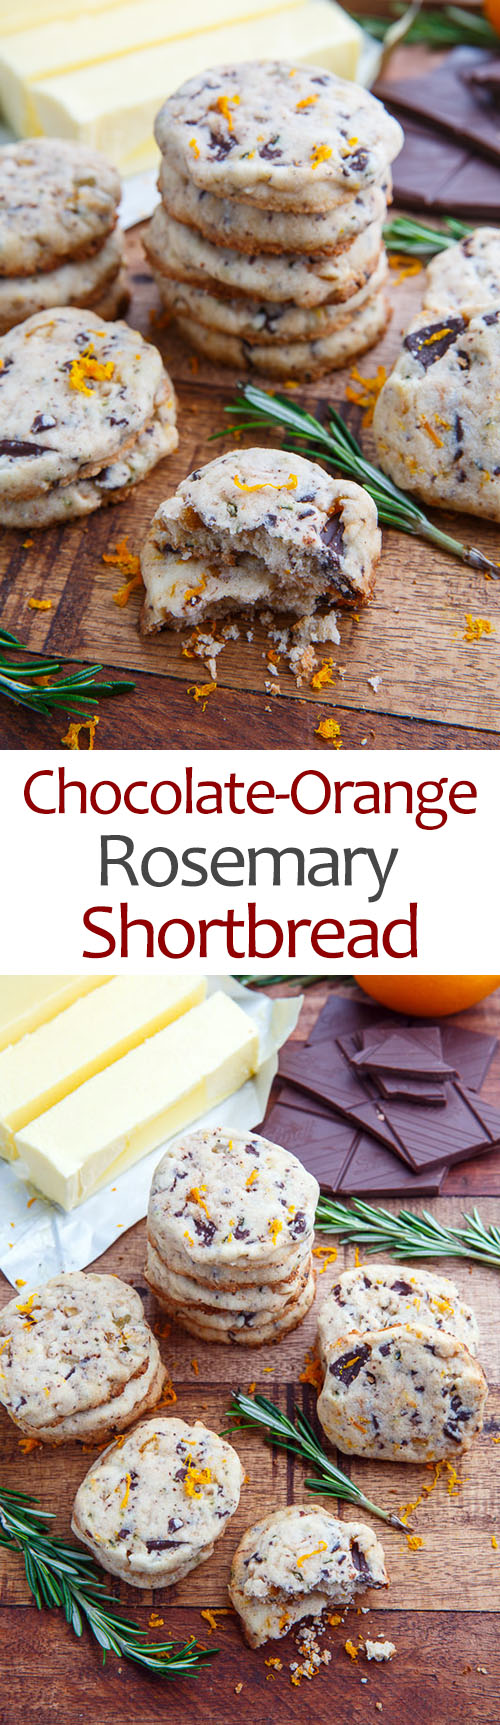 Chocolate Orange Rosemary Shortbread